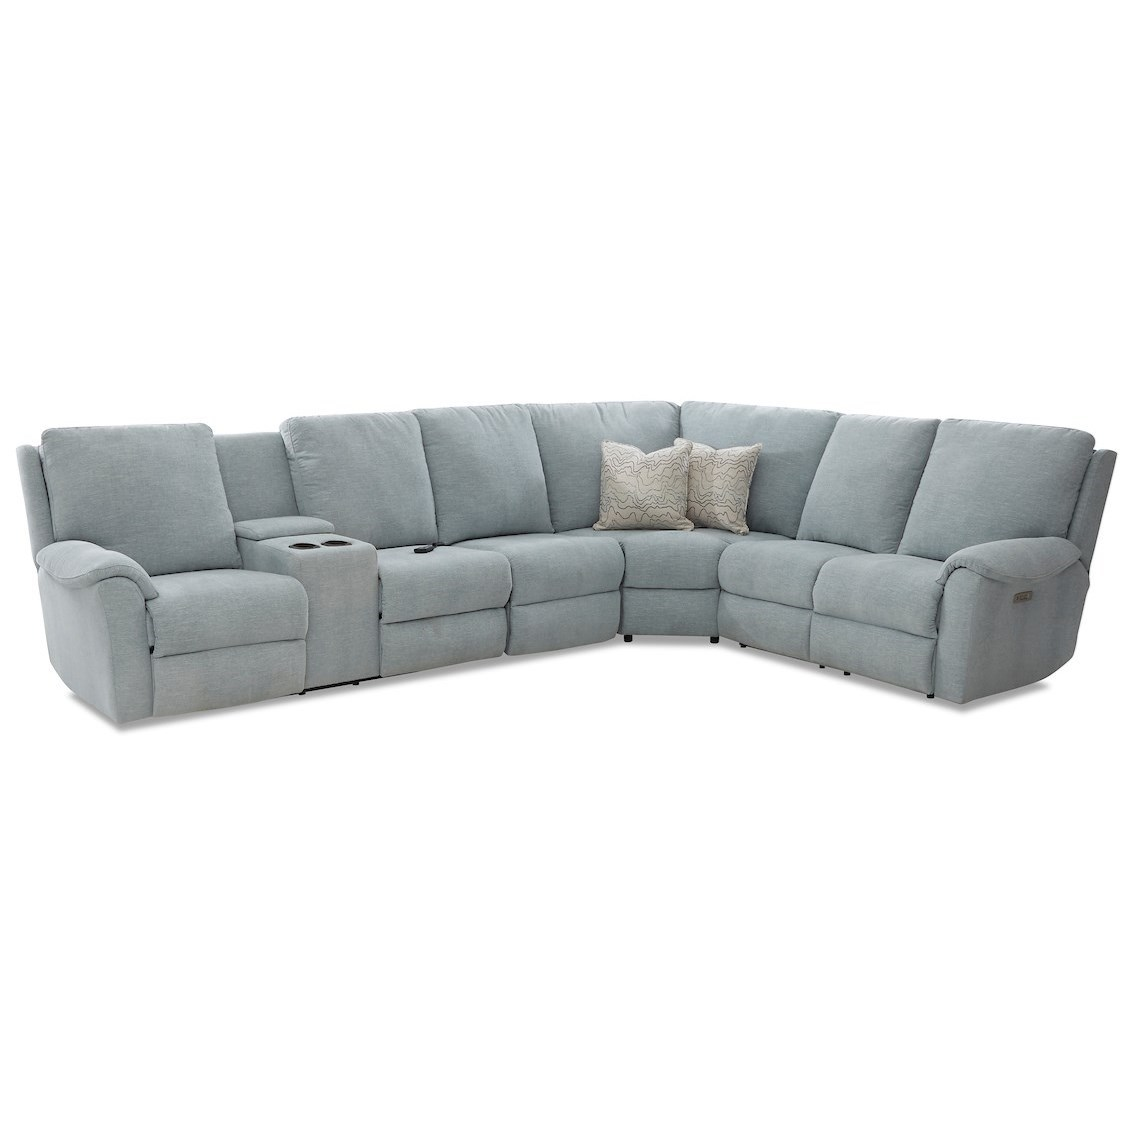 Davos Pwr Recline Sectional w/LAF Cnsl/Pwr Head/Ma by Klaussner at Northeast Factory Direct